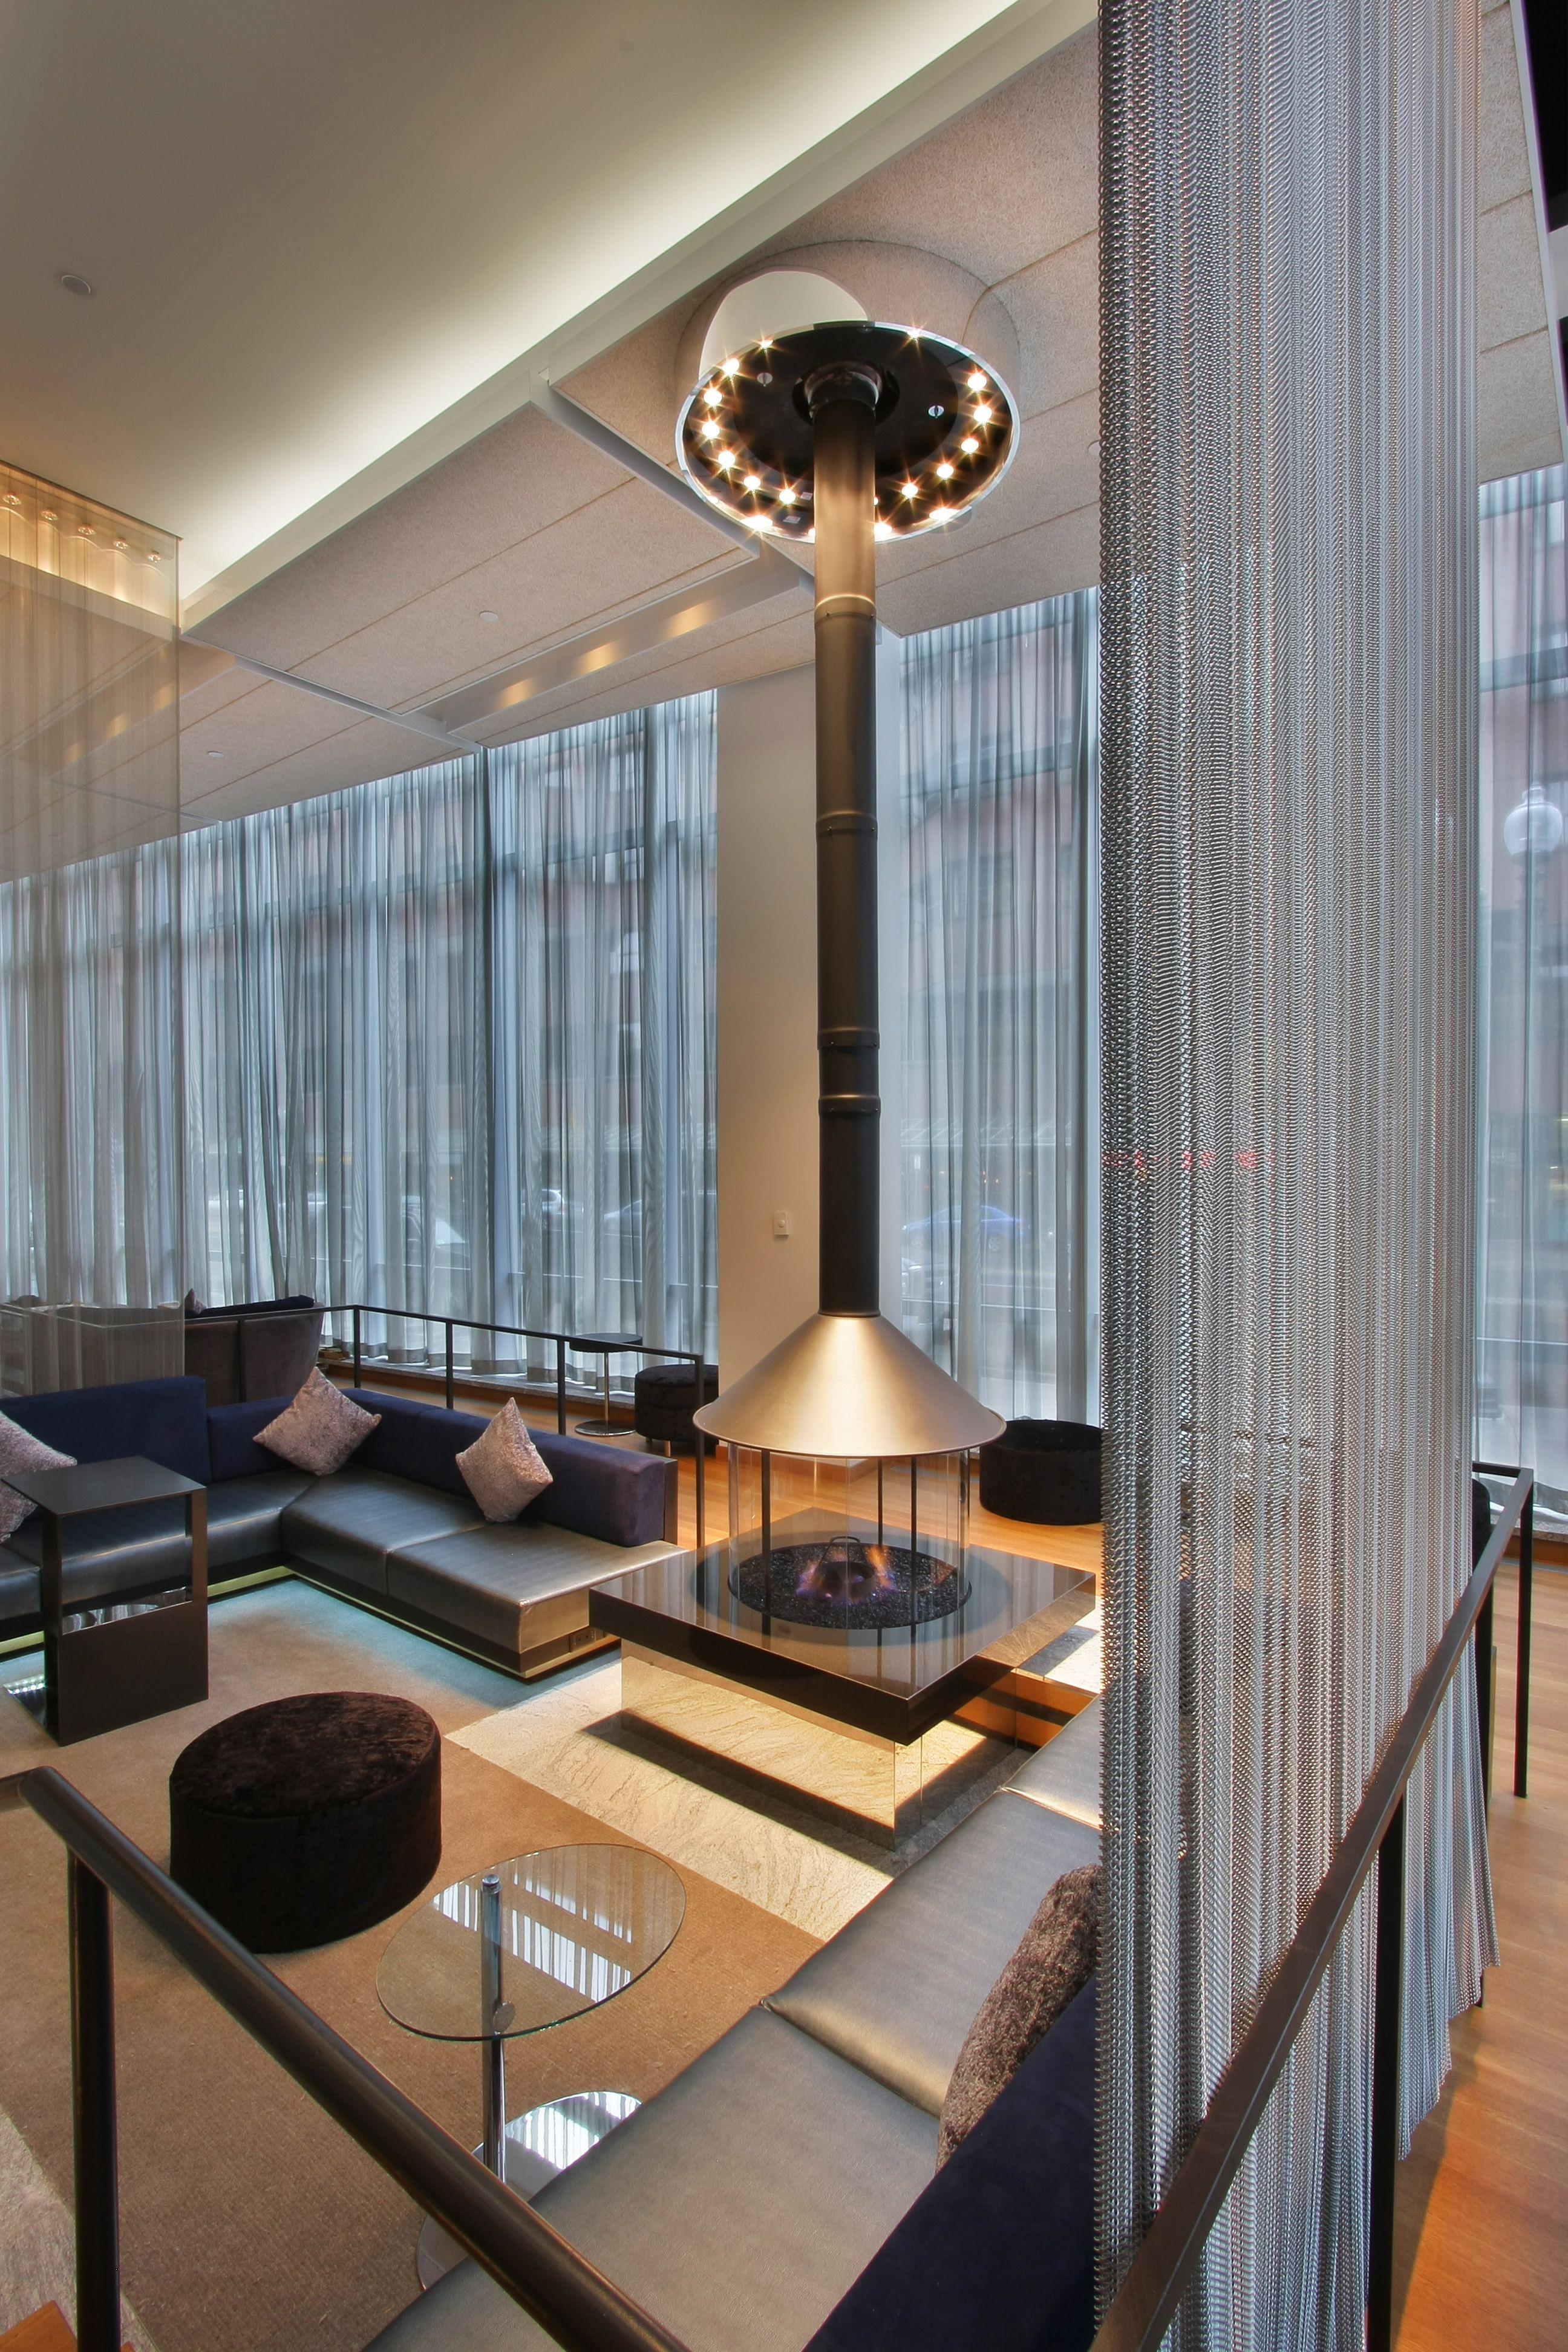 Decorative Firescreens And Wire Mesh Curtains Create